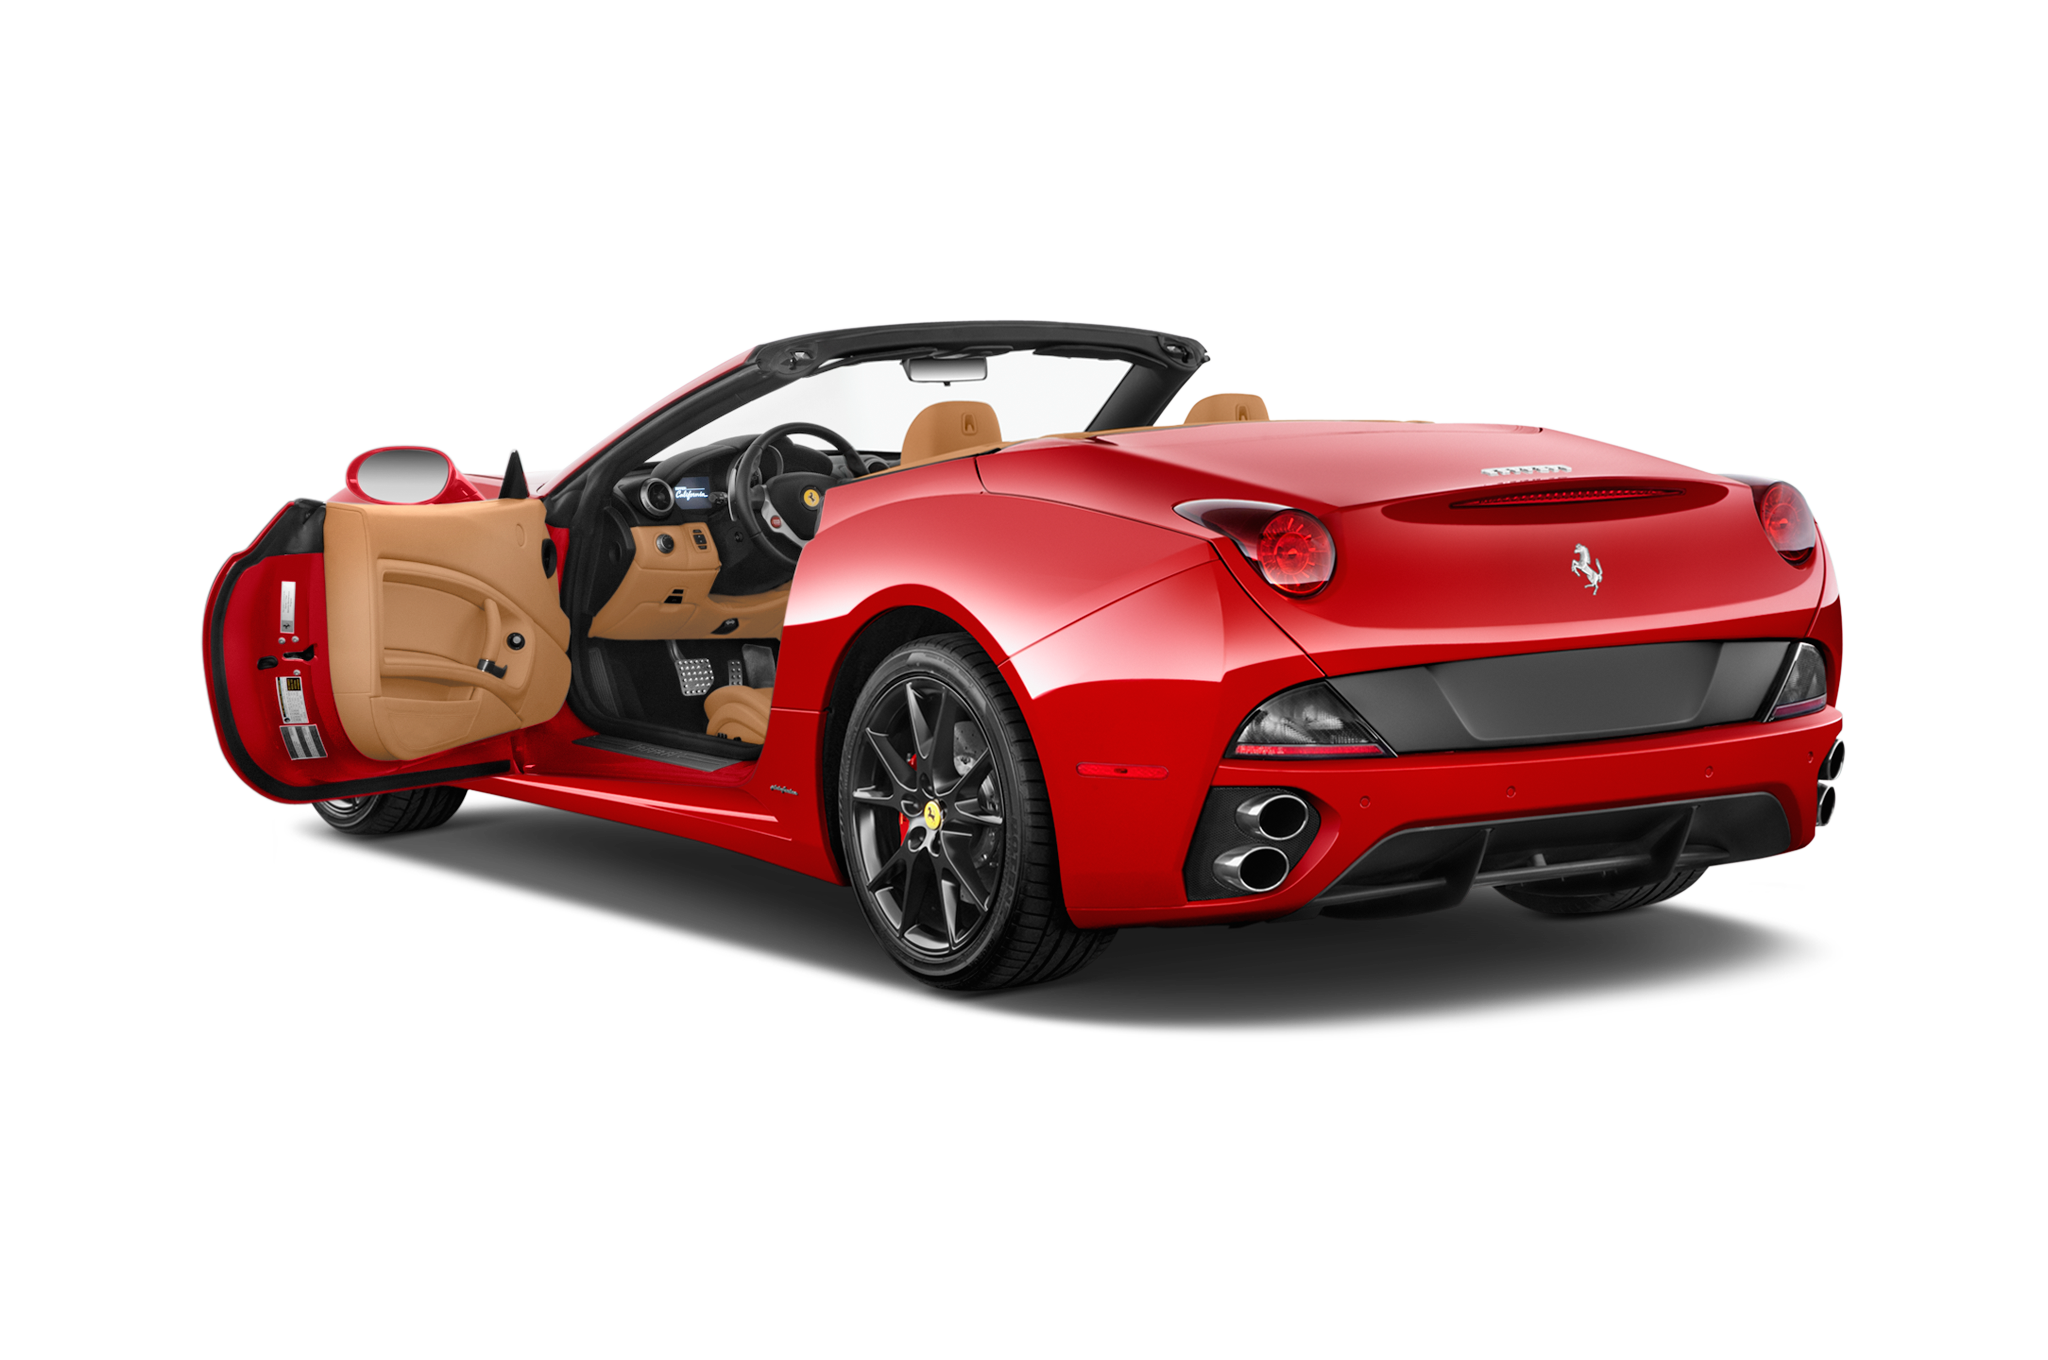 Ferrari California Updated Pics 47 Images New Hd Car Wallpaper Fuse Box 2018 With More Power Less Weight